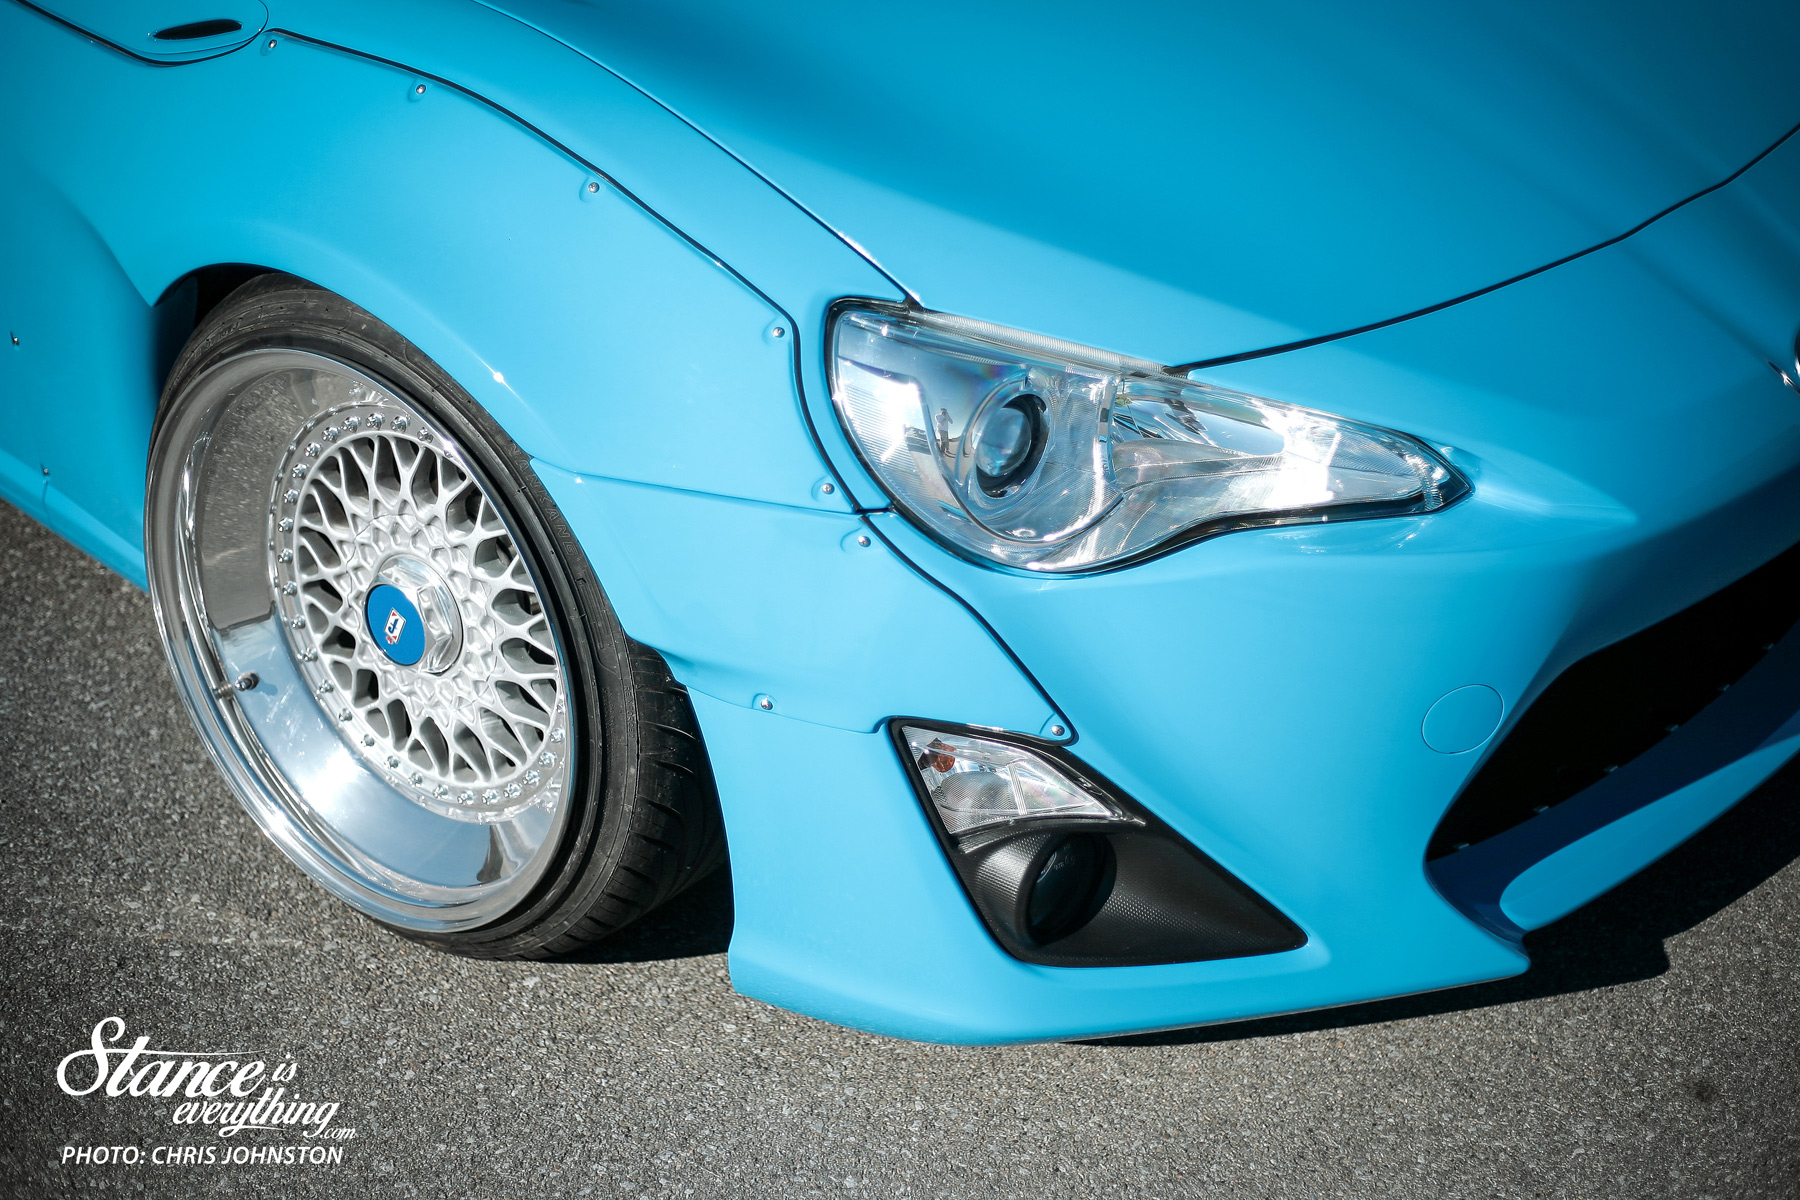 rocket-bunny-frs-bbs-cyrious-garage-bryan-costa-15